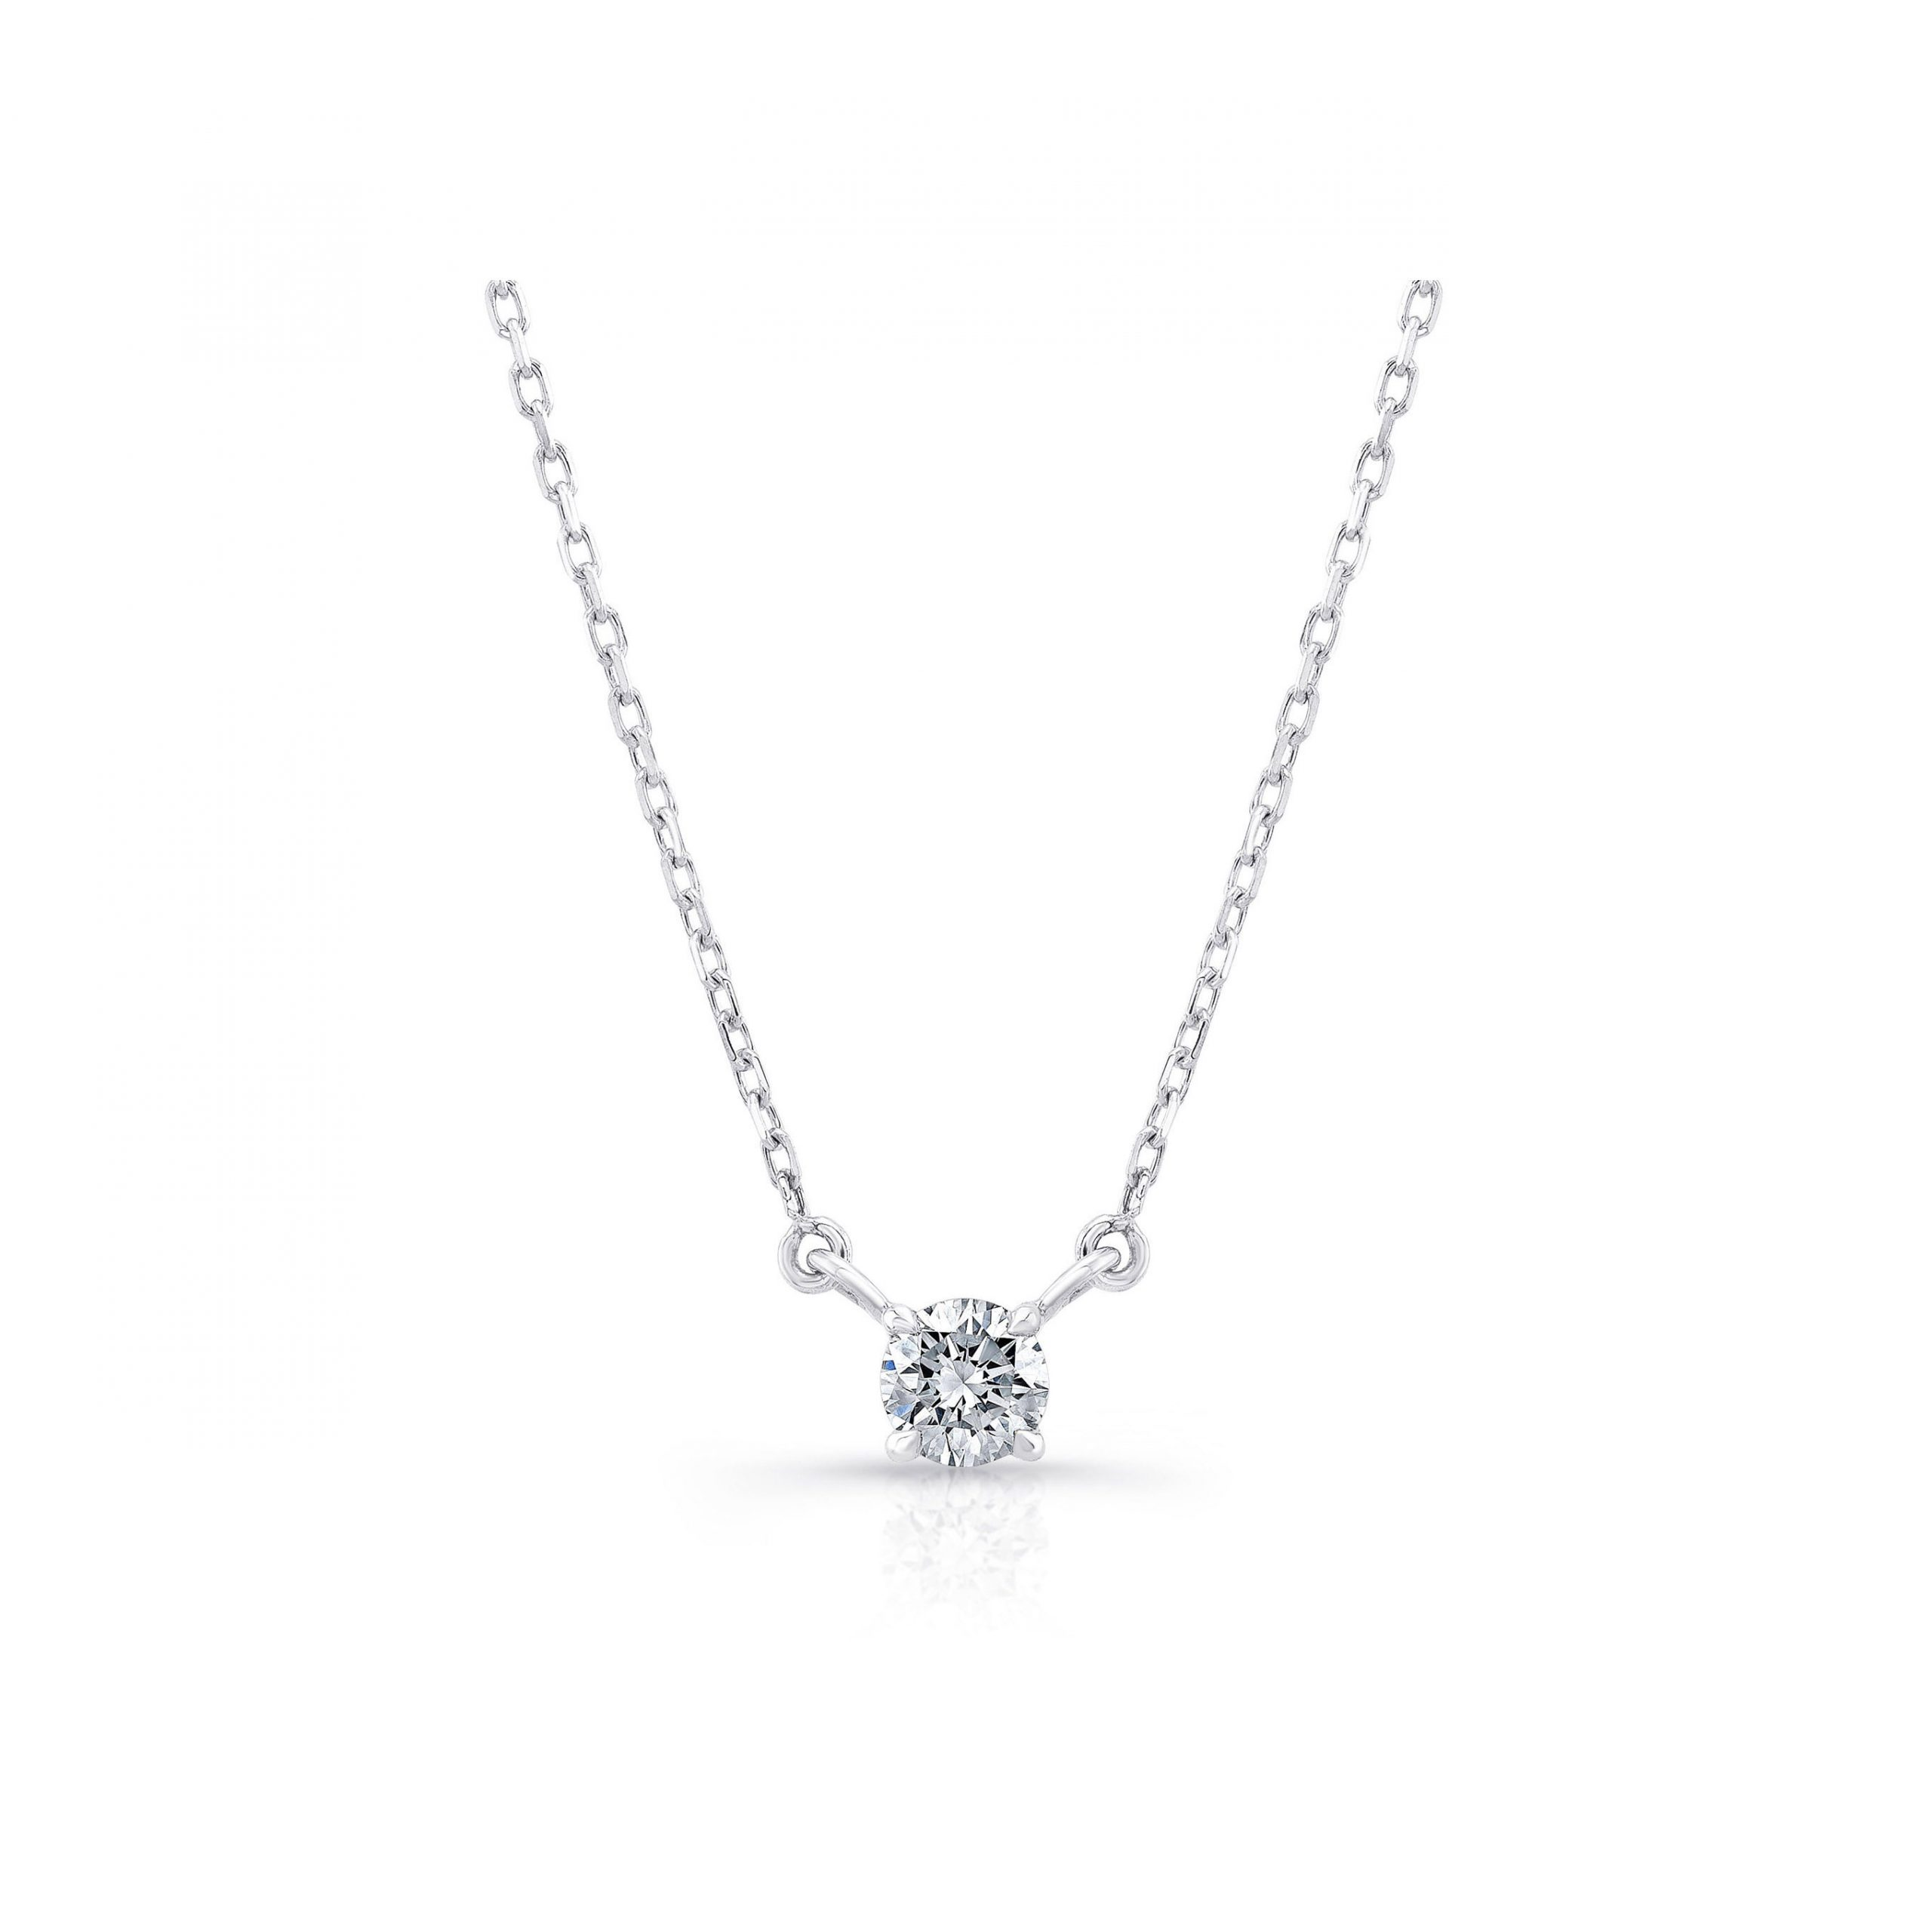 La Petite Round Brilliant Diamond Necklace in 18k White Gold Front View by Oui by Jean Dousset